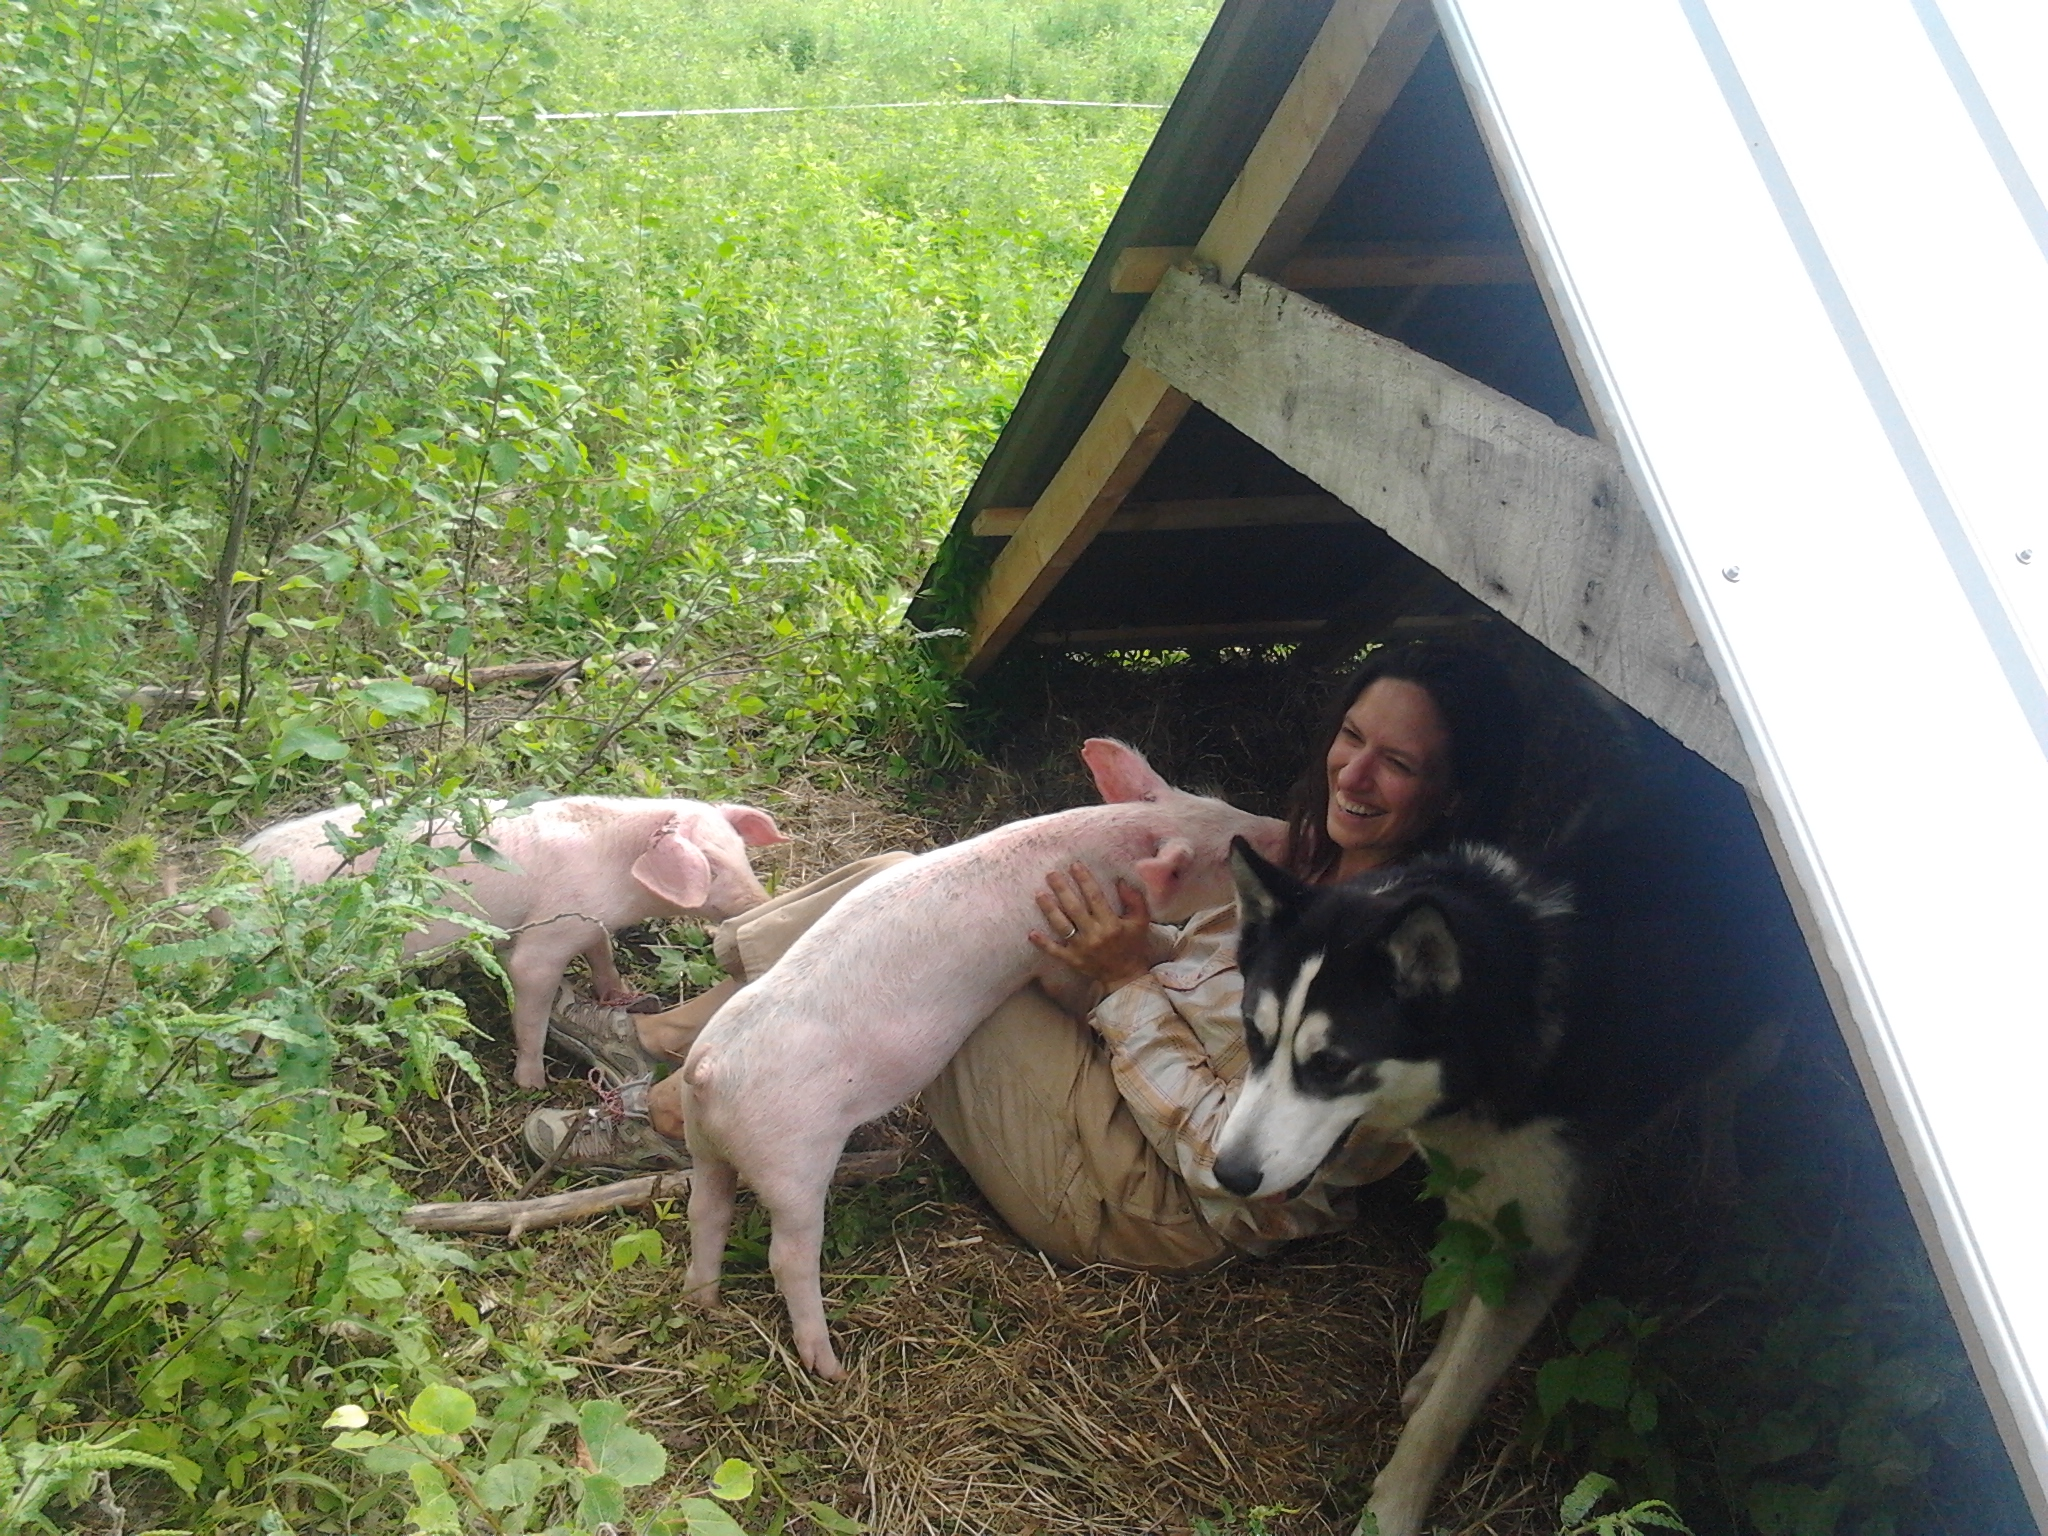 Piglets!  And dog, and sunburn...